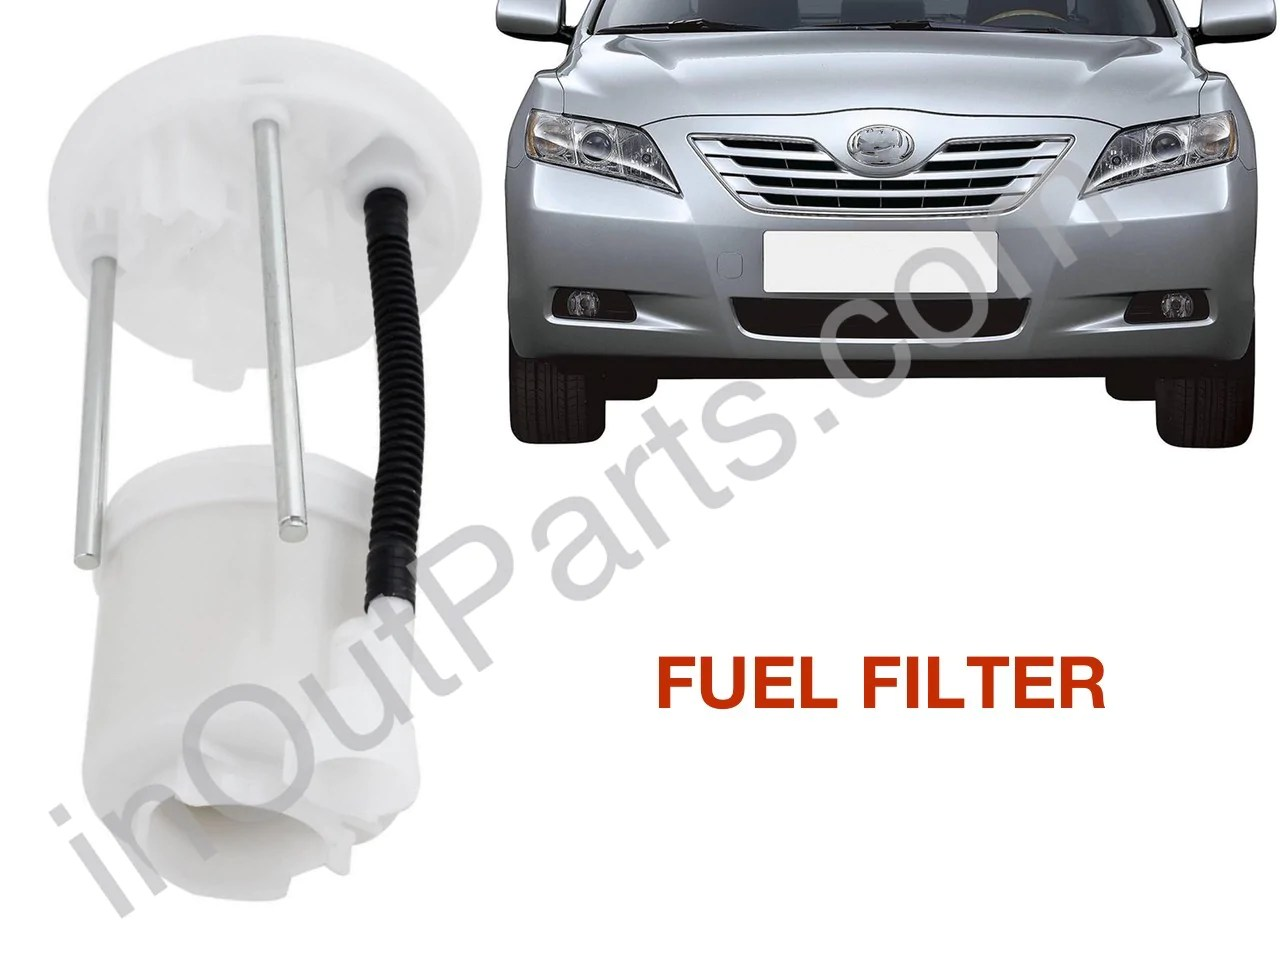 fuel filter toyota camry 2azfe 2006 2007 2008 2009 2010 2011 2012 2013 inout parts [ 1280 x 960 Pixel ]